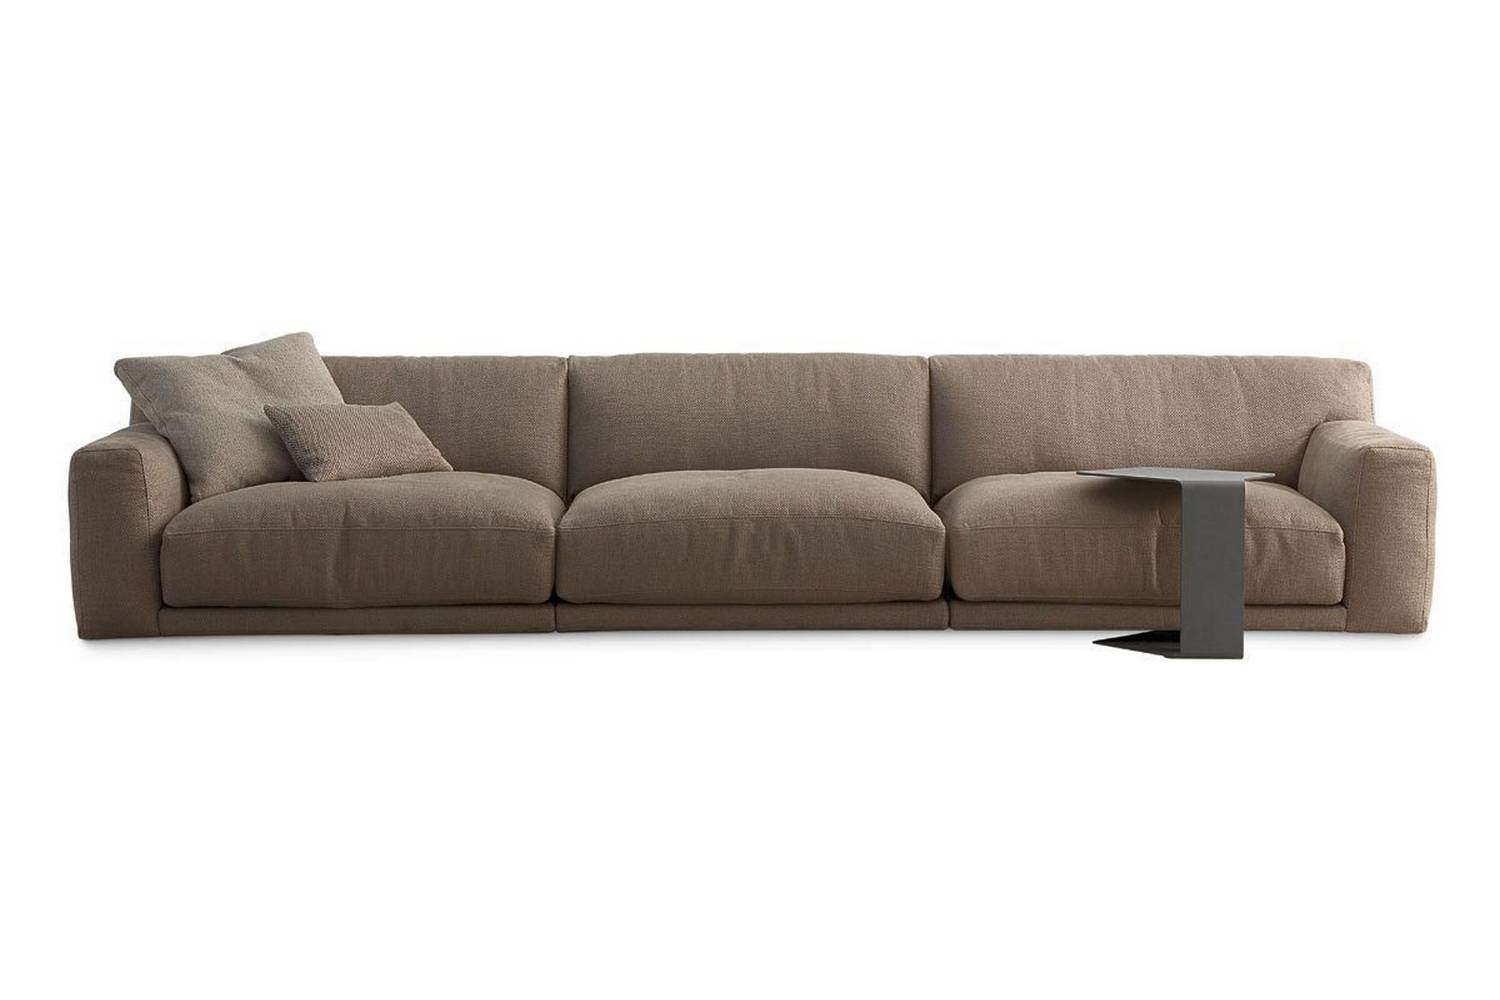 j m paquet sofa klippan 4 seater paris seoul by massaud for poliform